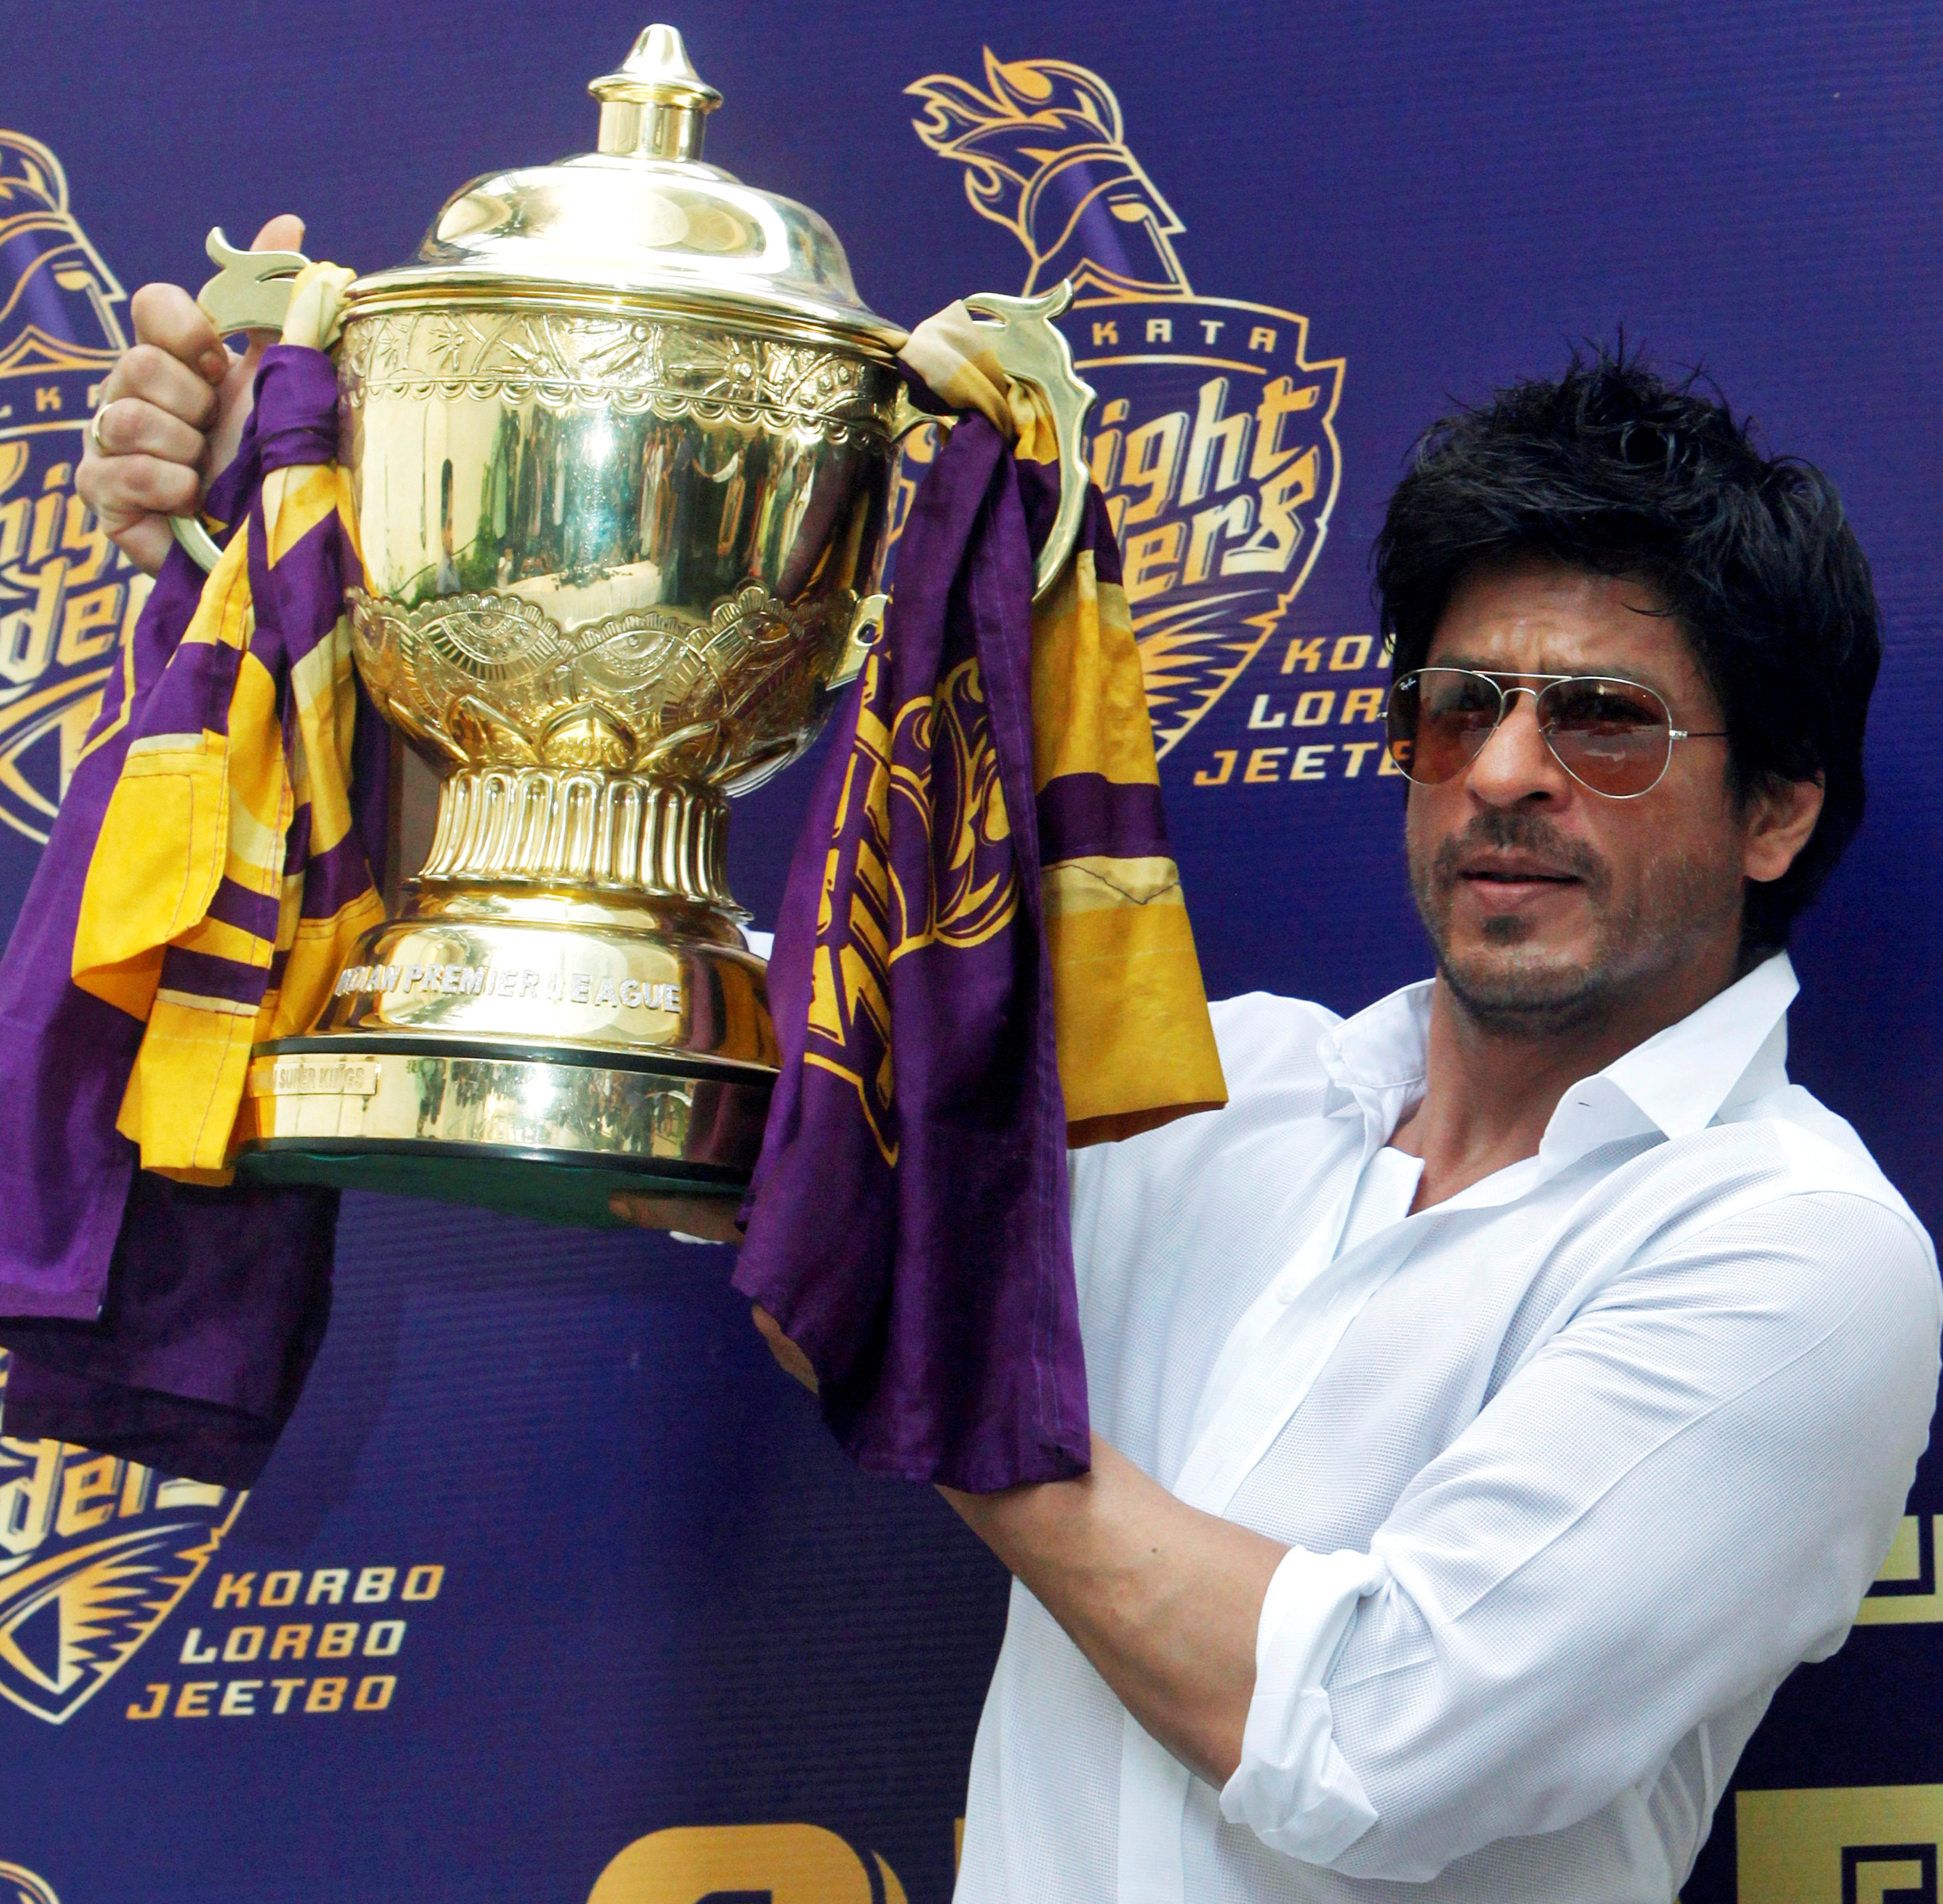 Bollywood actor Shah Rukh Khan displays the Indian Premier League (IPL) cricket trophy during a news conference at his residence in Mumbai May 30, 2012. Khan's Kolkata Knight Riders team won the 2012 IPL after defeating Chennai Super Kings on May 27. REUTERS/Vivek Prakash/File Photo